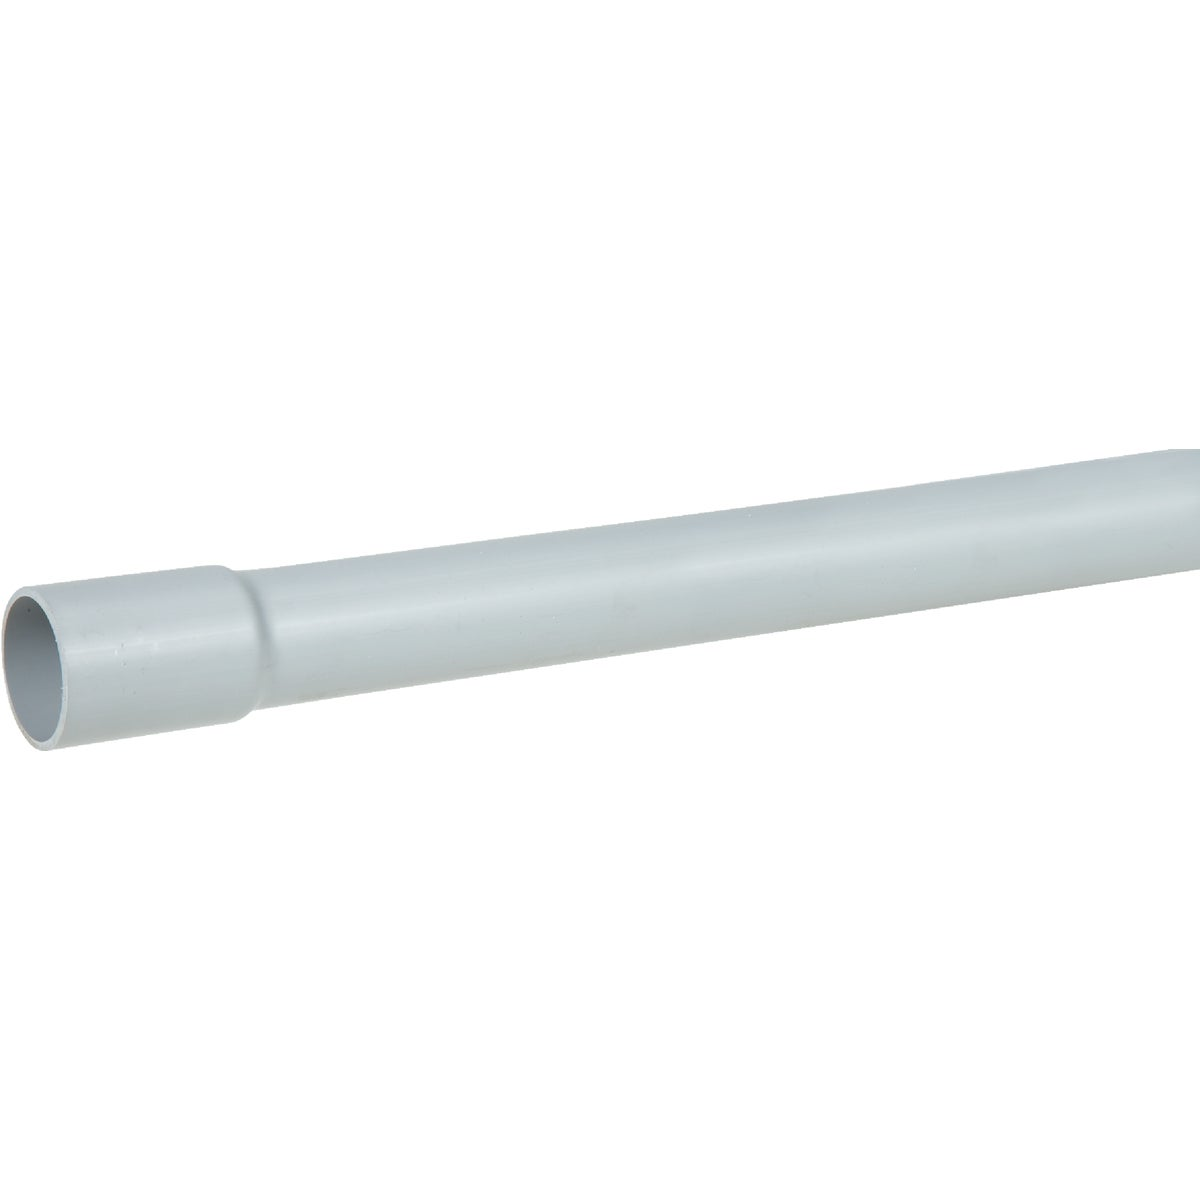 "2-1/2"" SCH40 10' CONDUIT - 49012-010 by Prime Conduit"